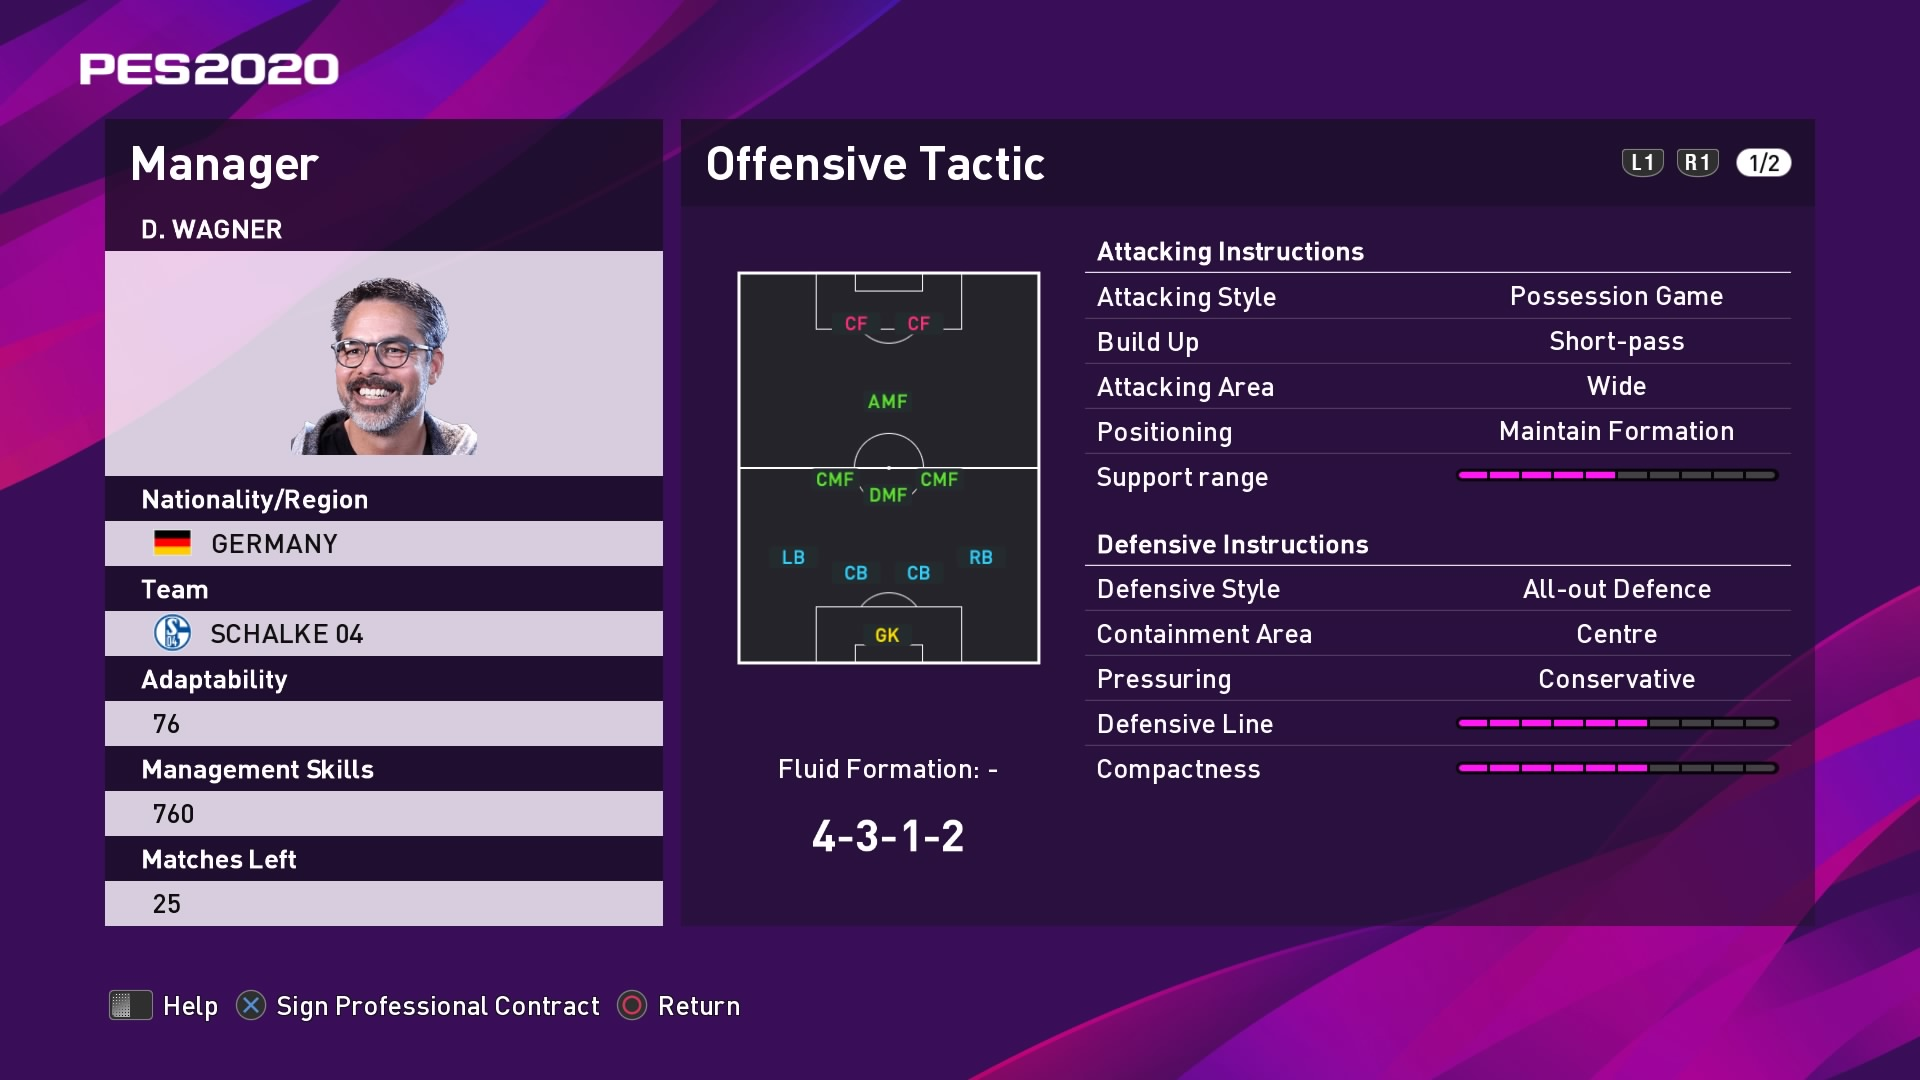 D. Wagner (David Wagner) Offensive Tactic in PES 2020 myClub